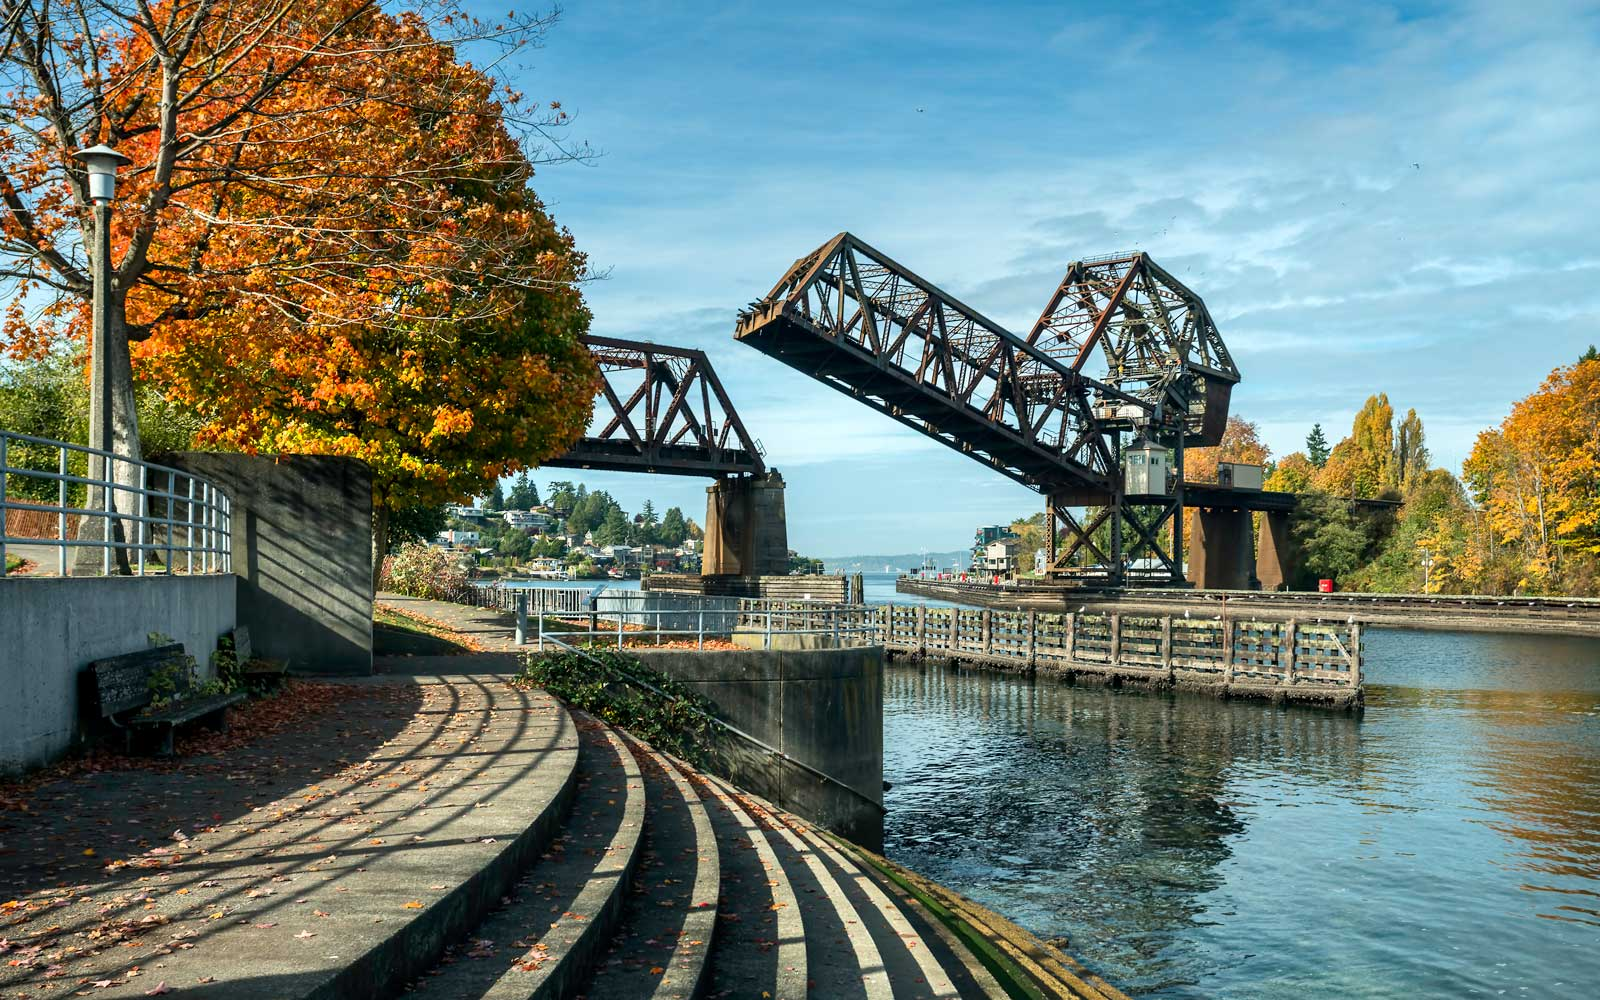 The Salmon Bay Bridge over the Ballard Locks in Seattle